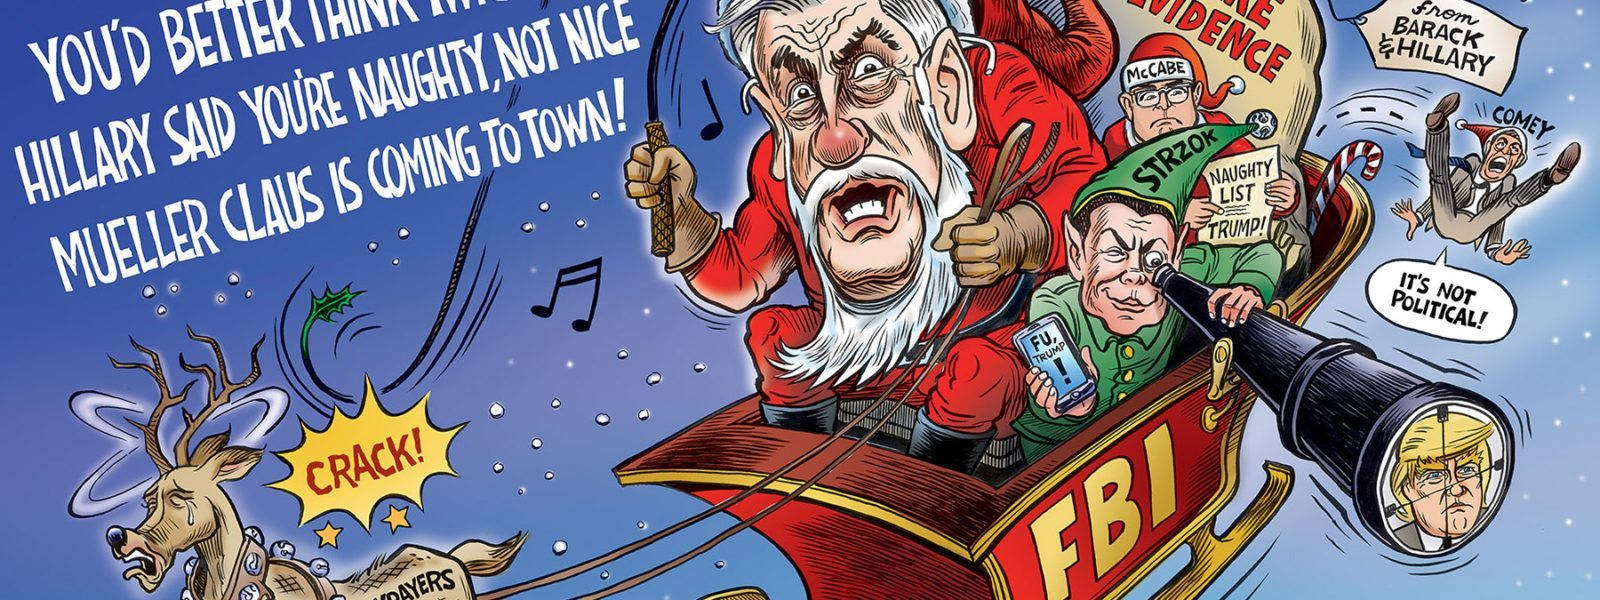 Mueller Claus is Coming to Town